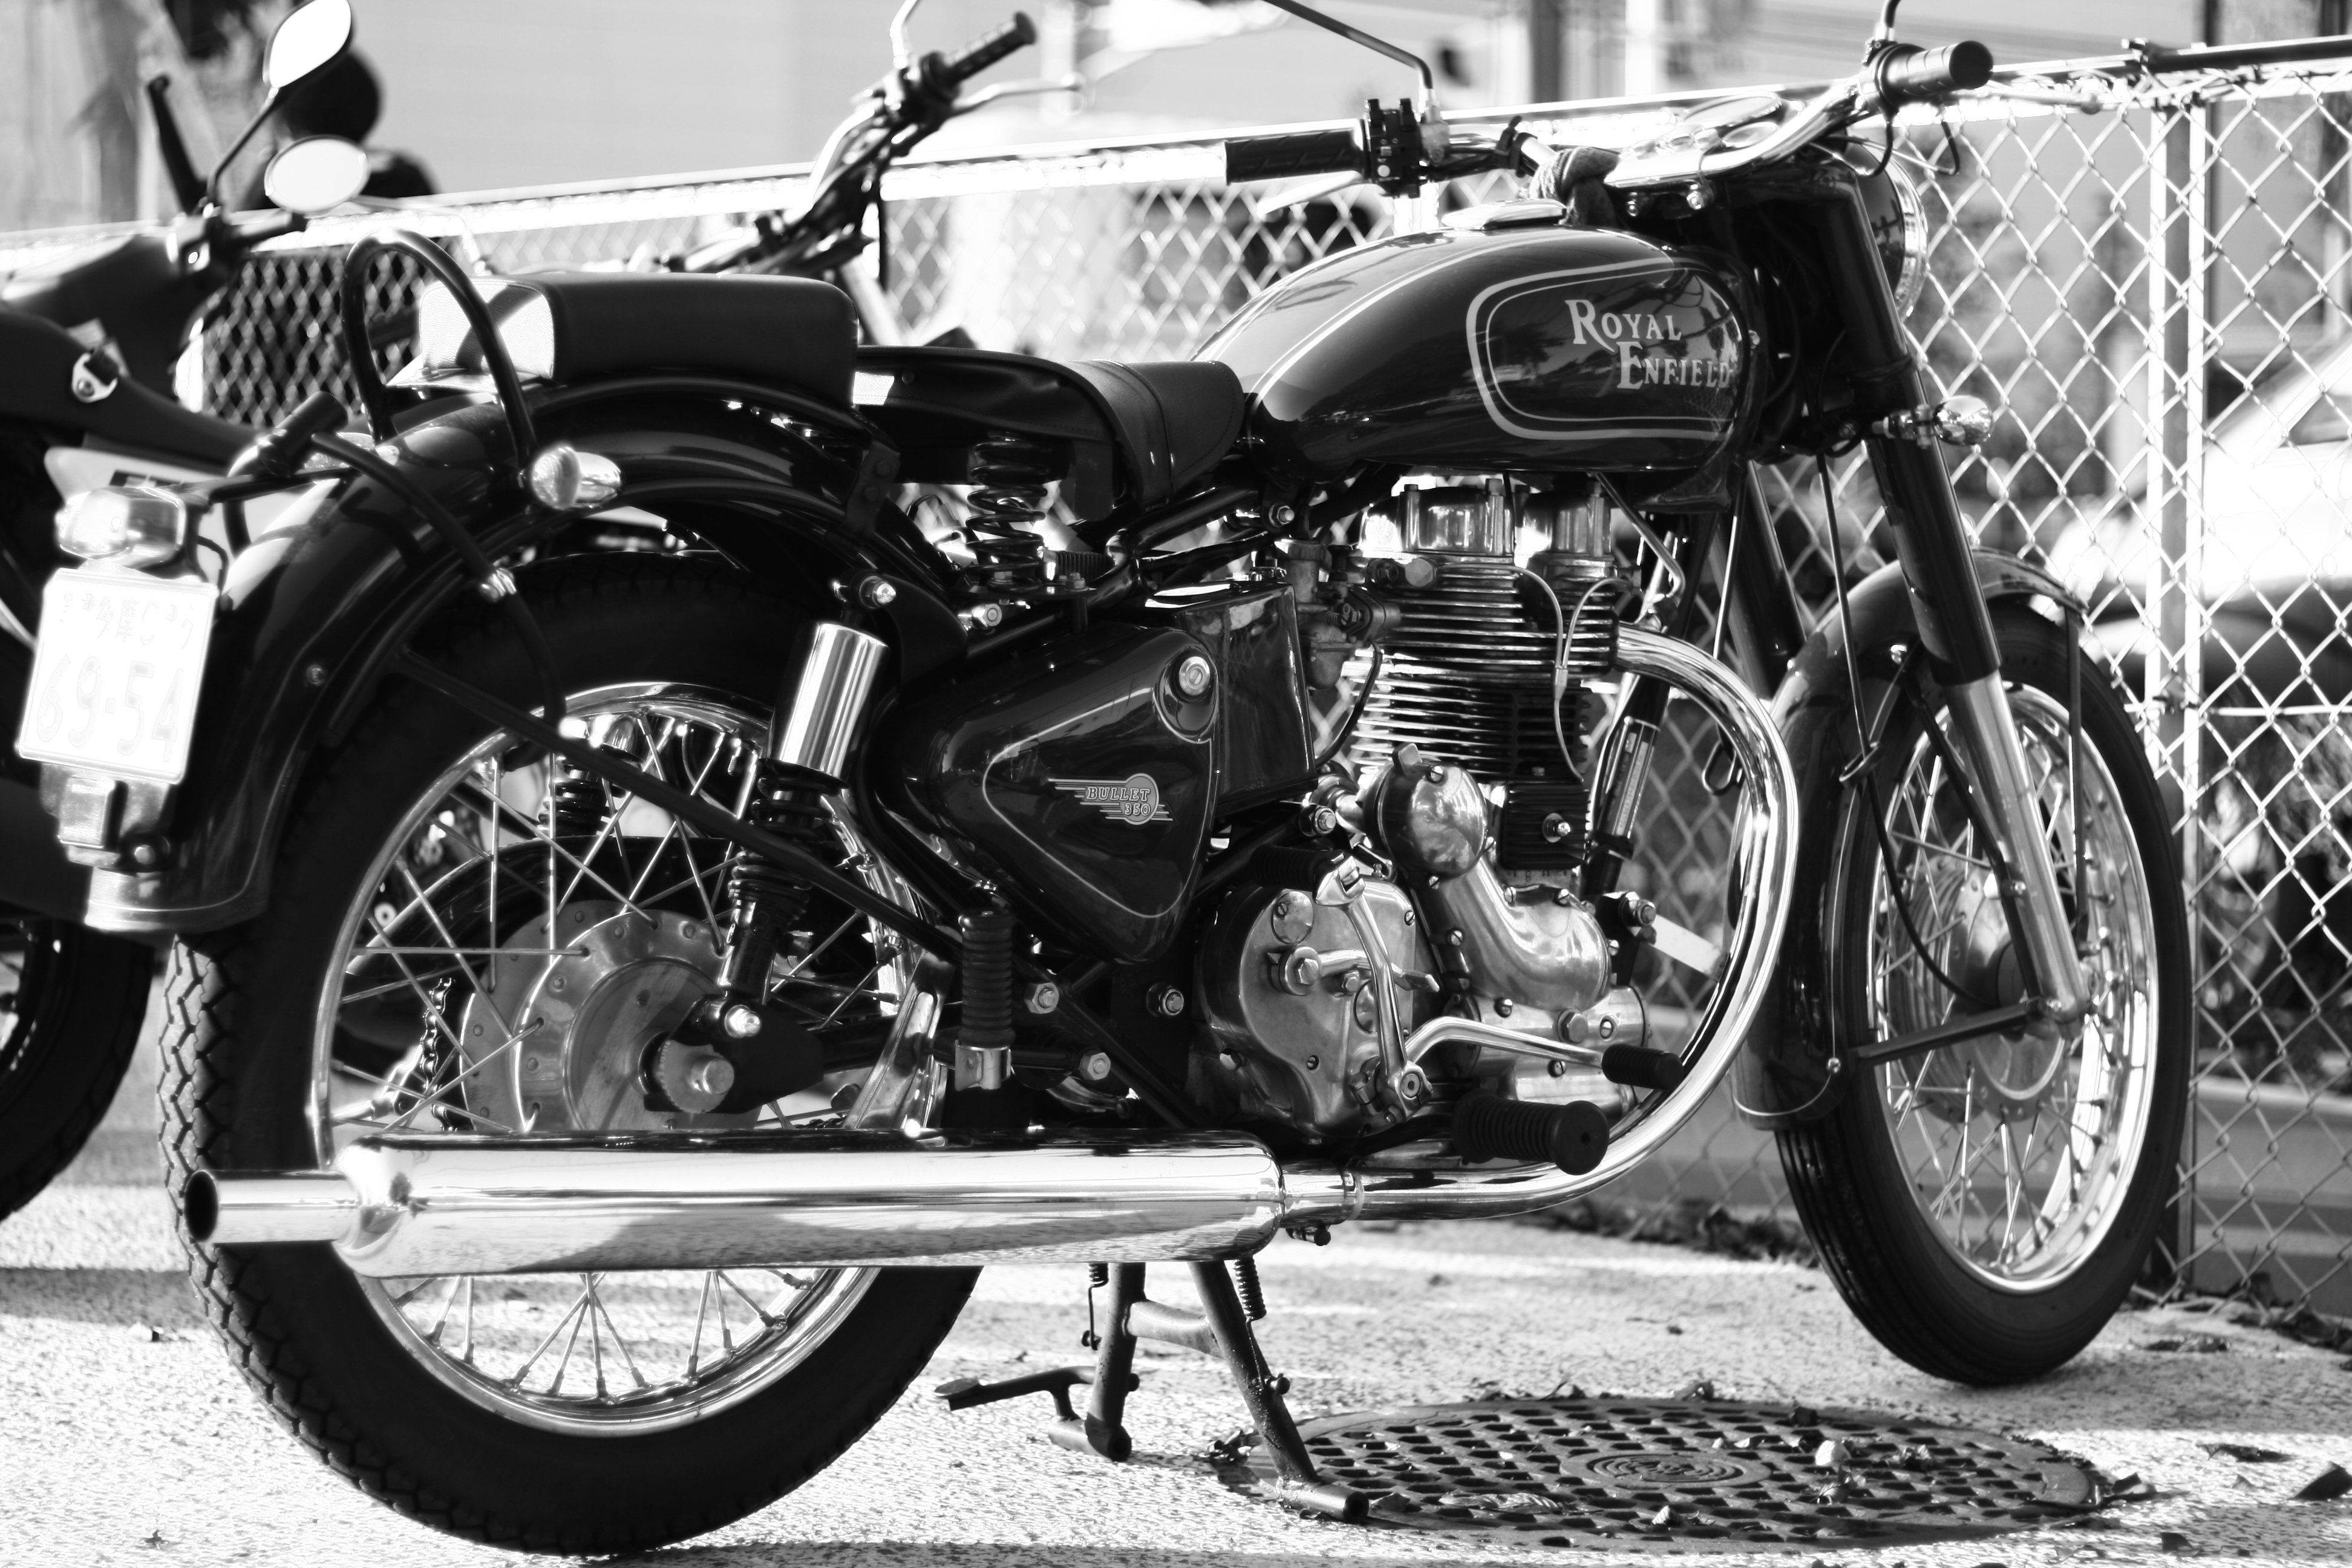 2009 Royal Enfield Bullet 500 S Clubman Pic 18 Onlymotorbikescom